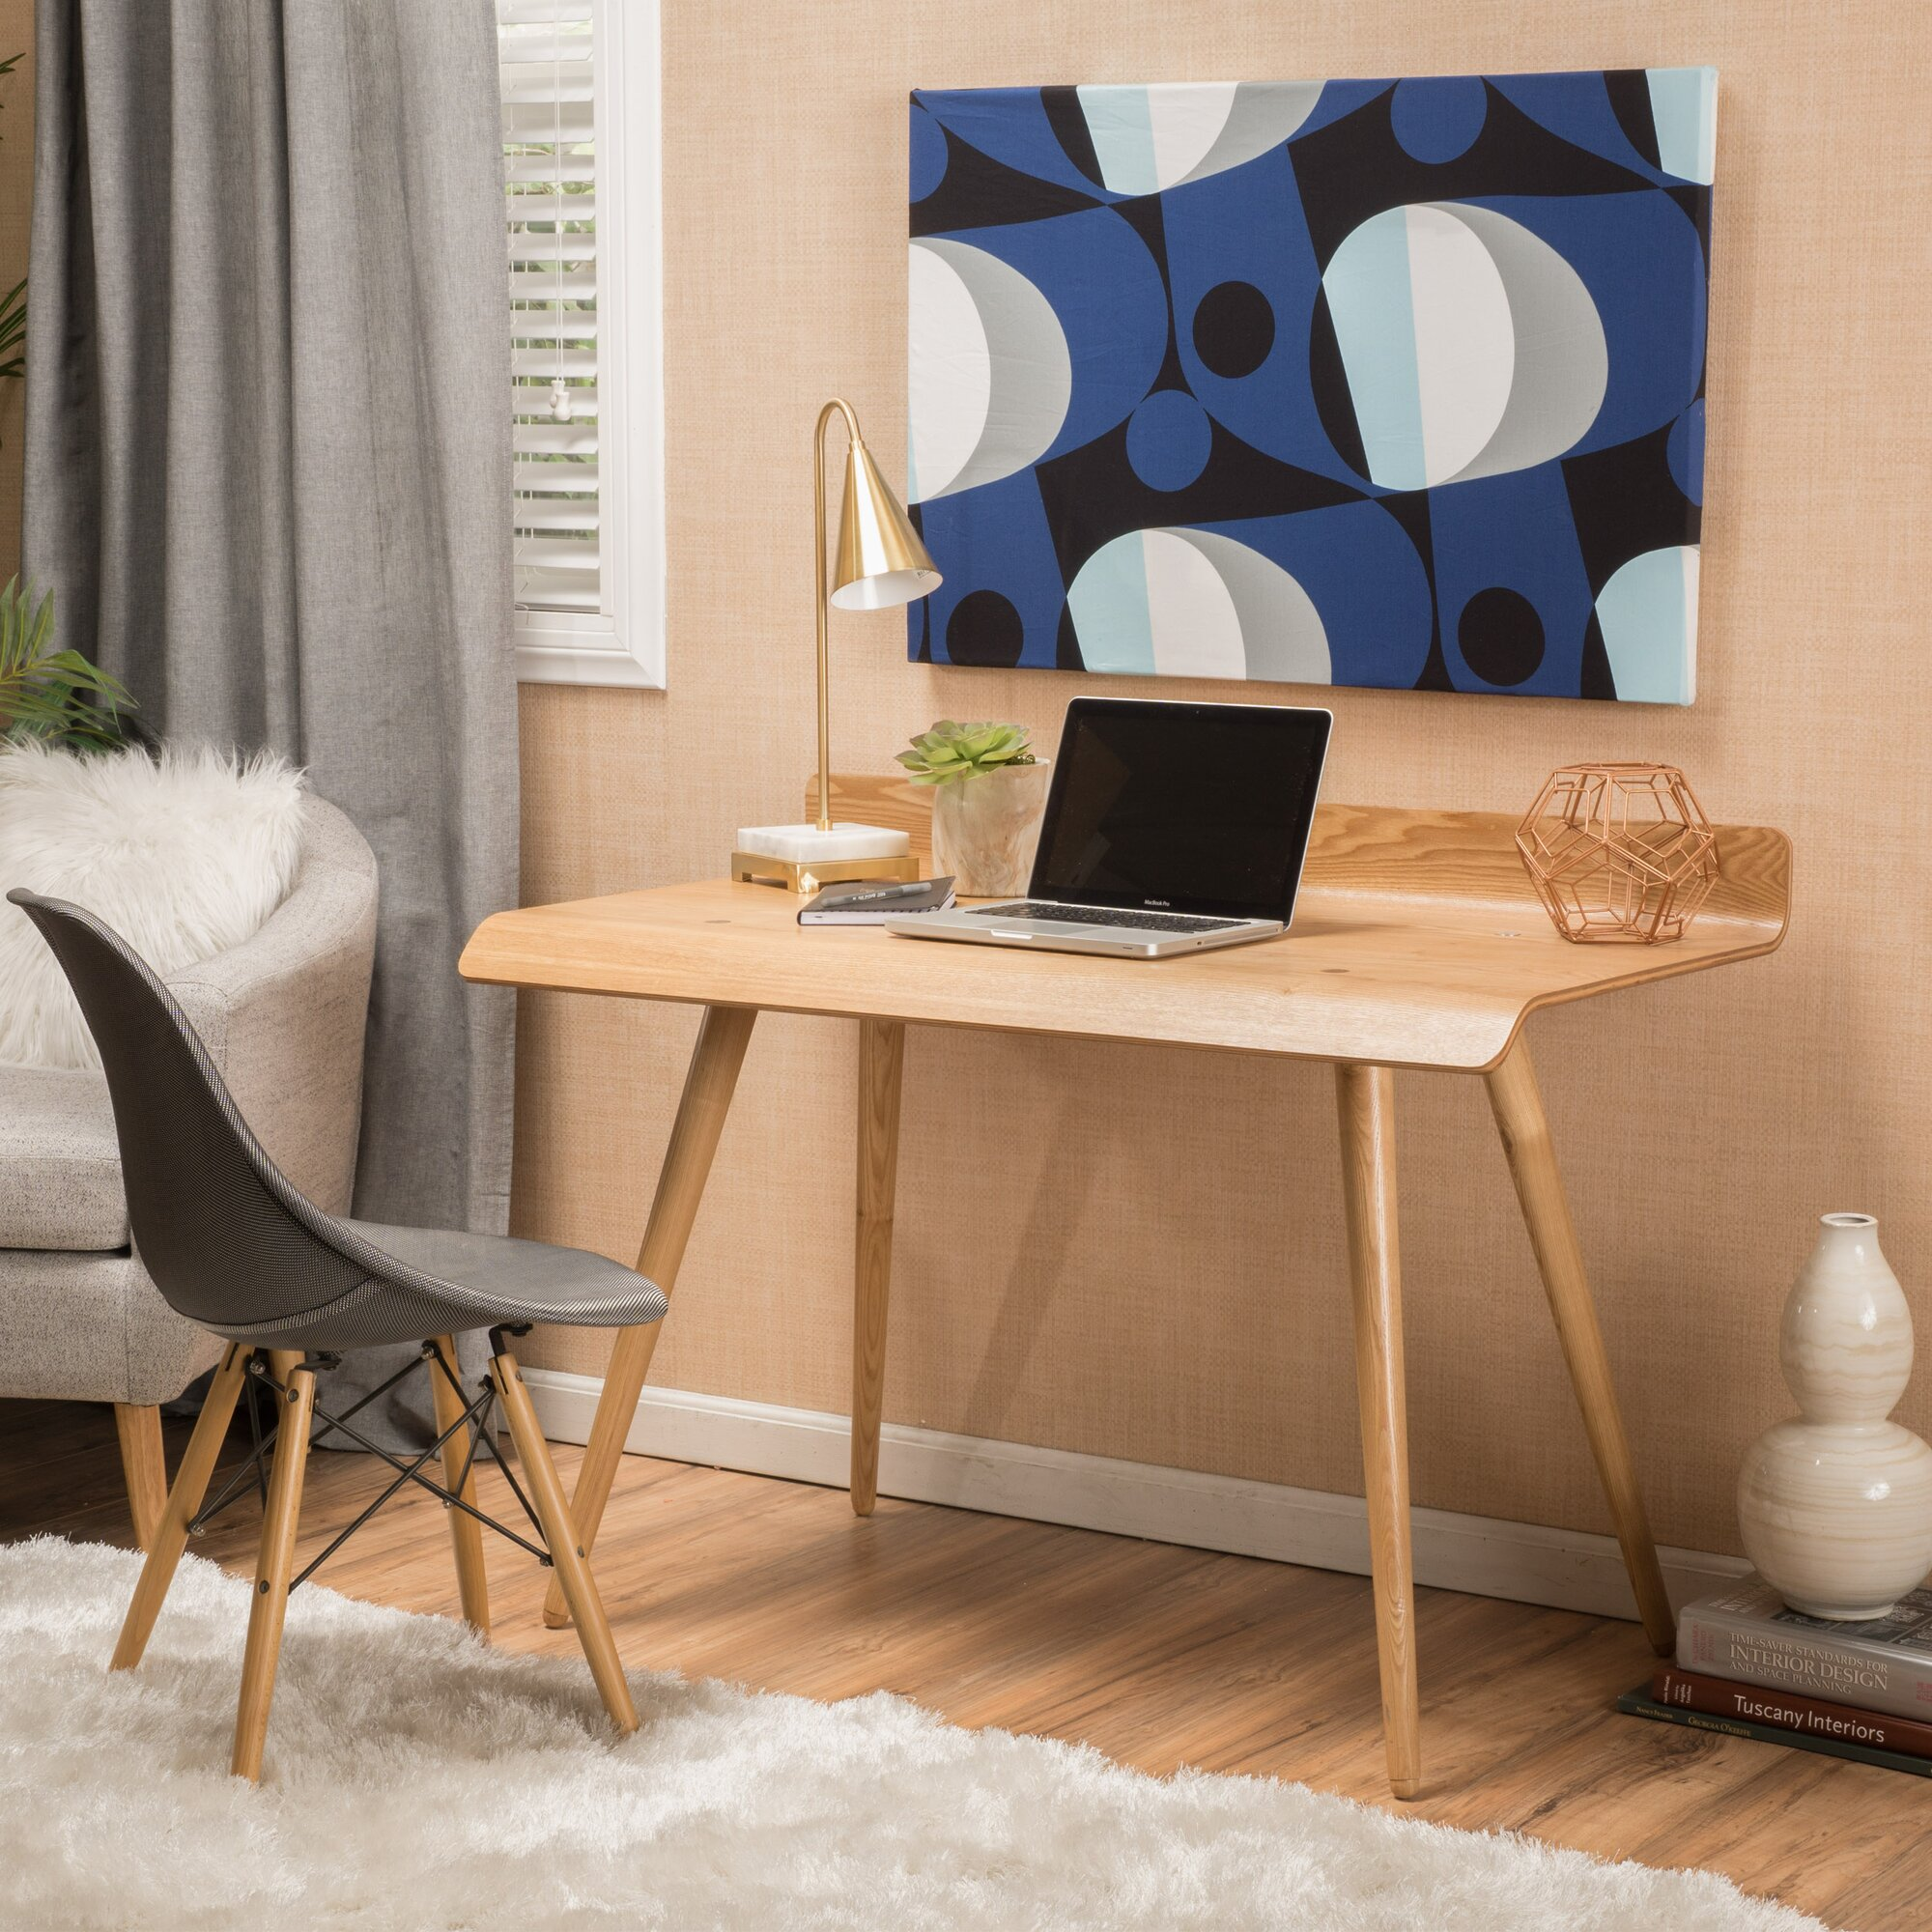 July 4th Furniture Sales: Langley Street Killeen Writing Desk & Reviews